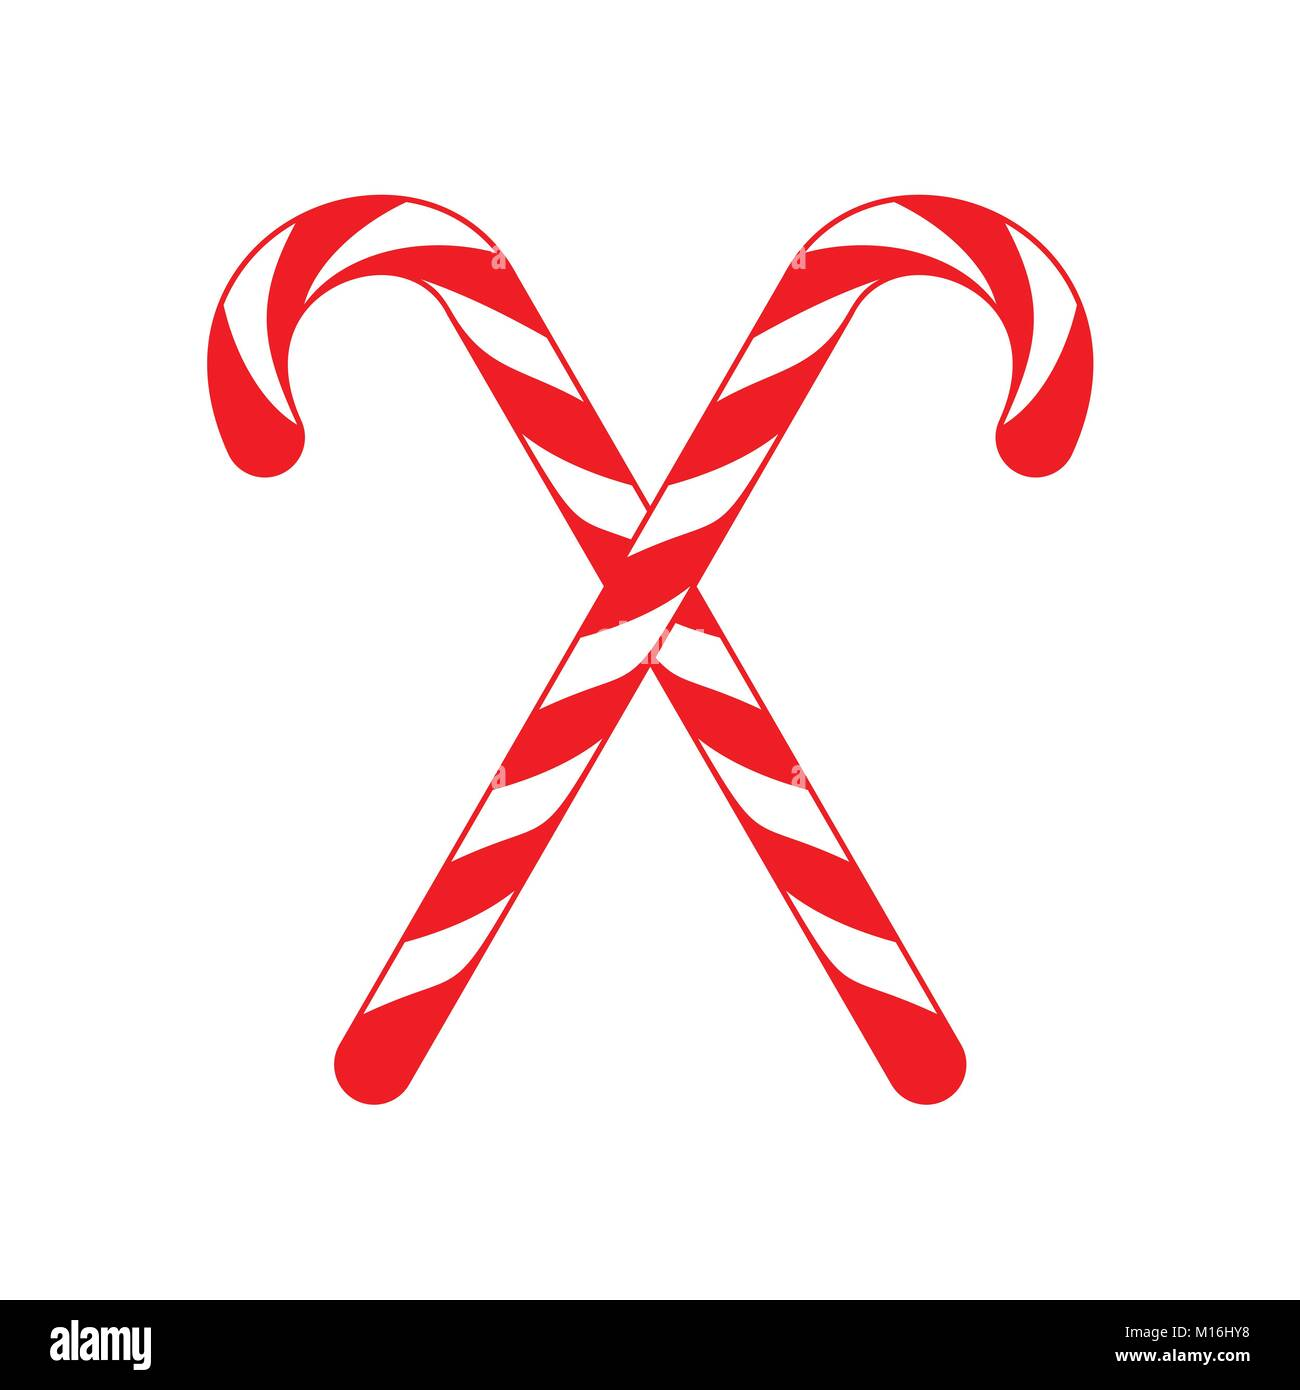 Christmas Candy Cane.Christmas Candy Cane Cross Vector Graphic Illustration Sign